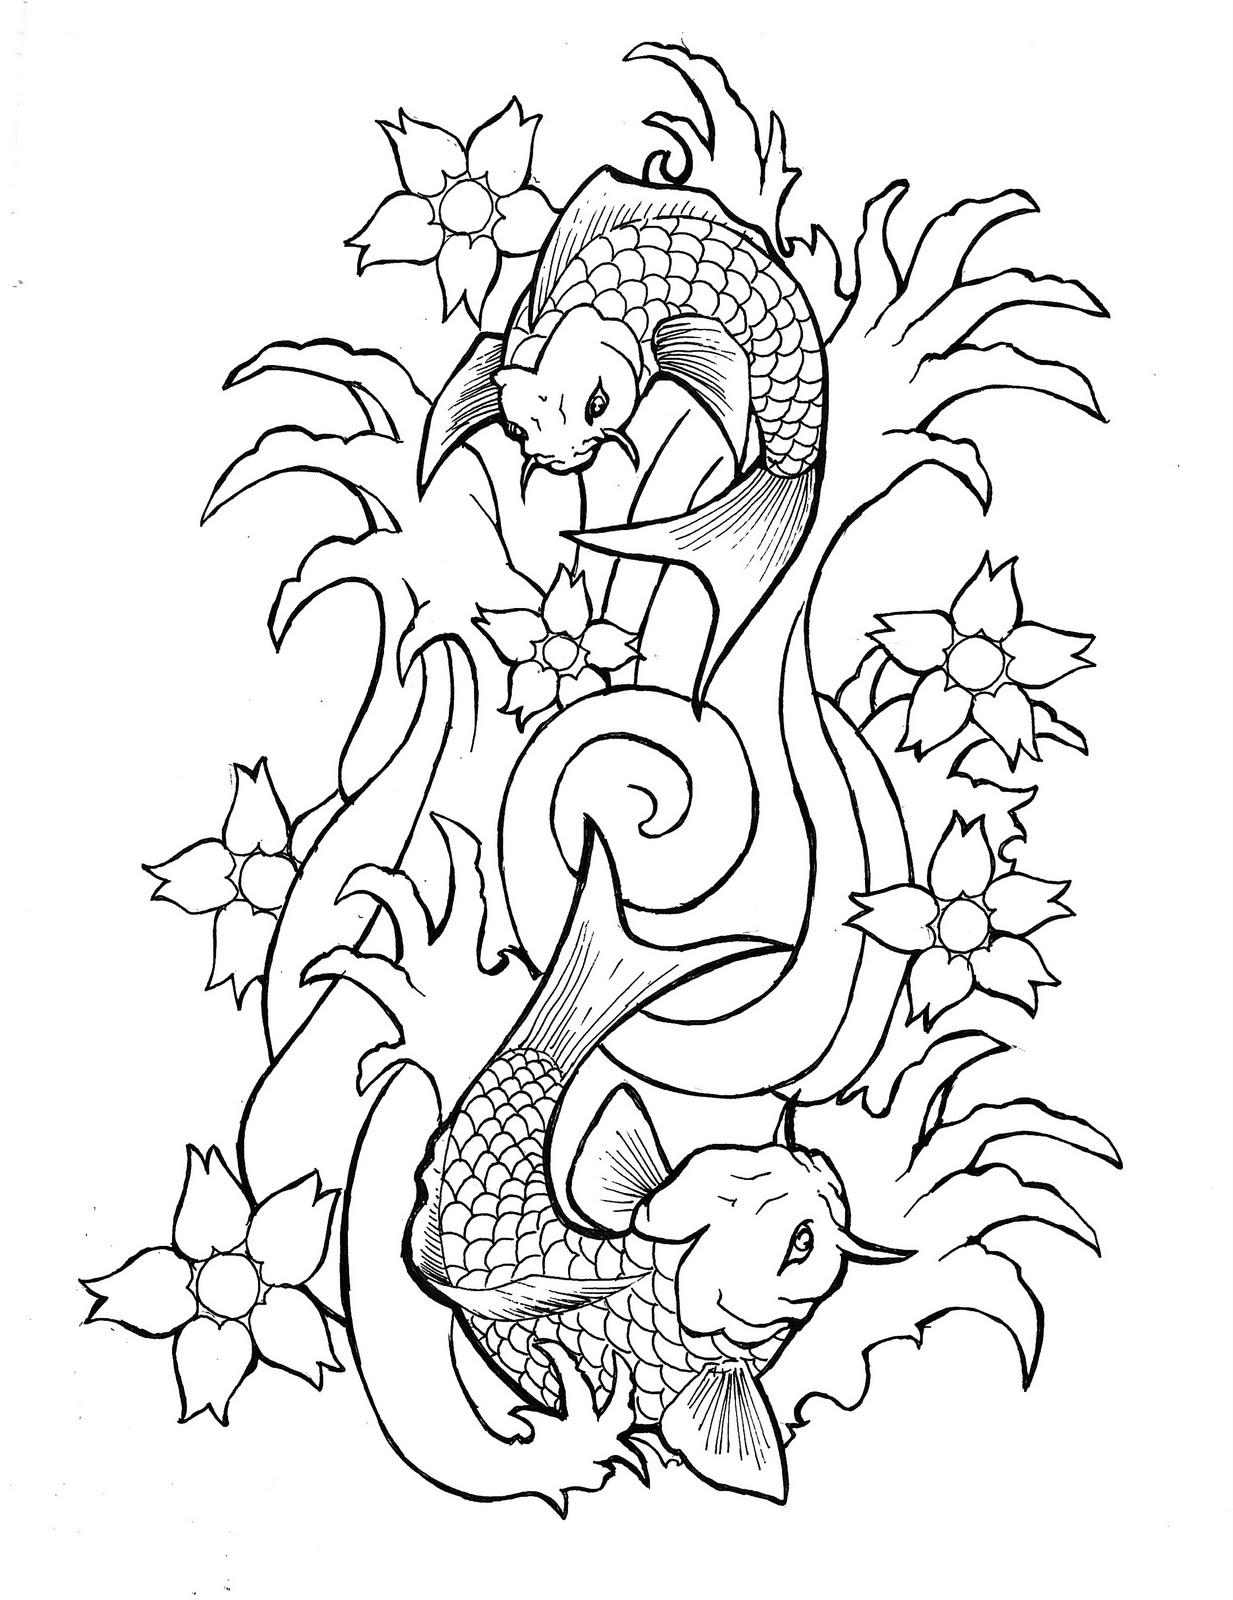 Tattoo Drawing Outline : Portfolio new tattoo flash outlines